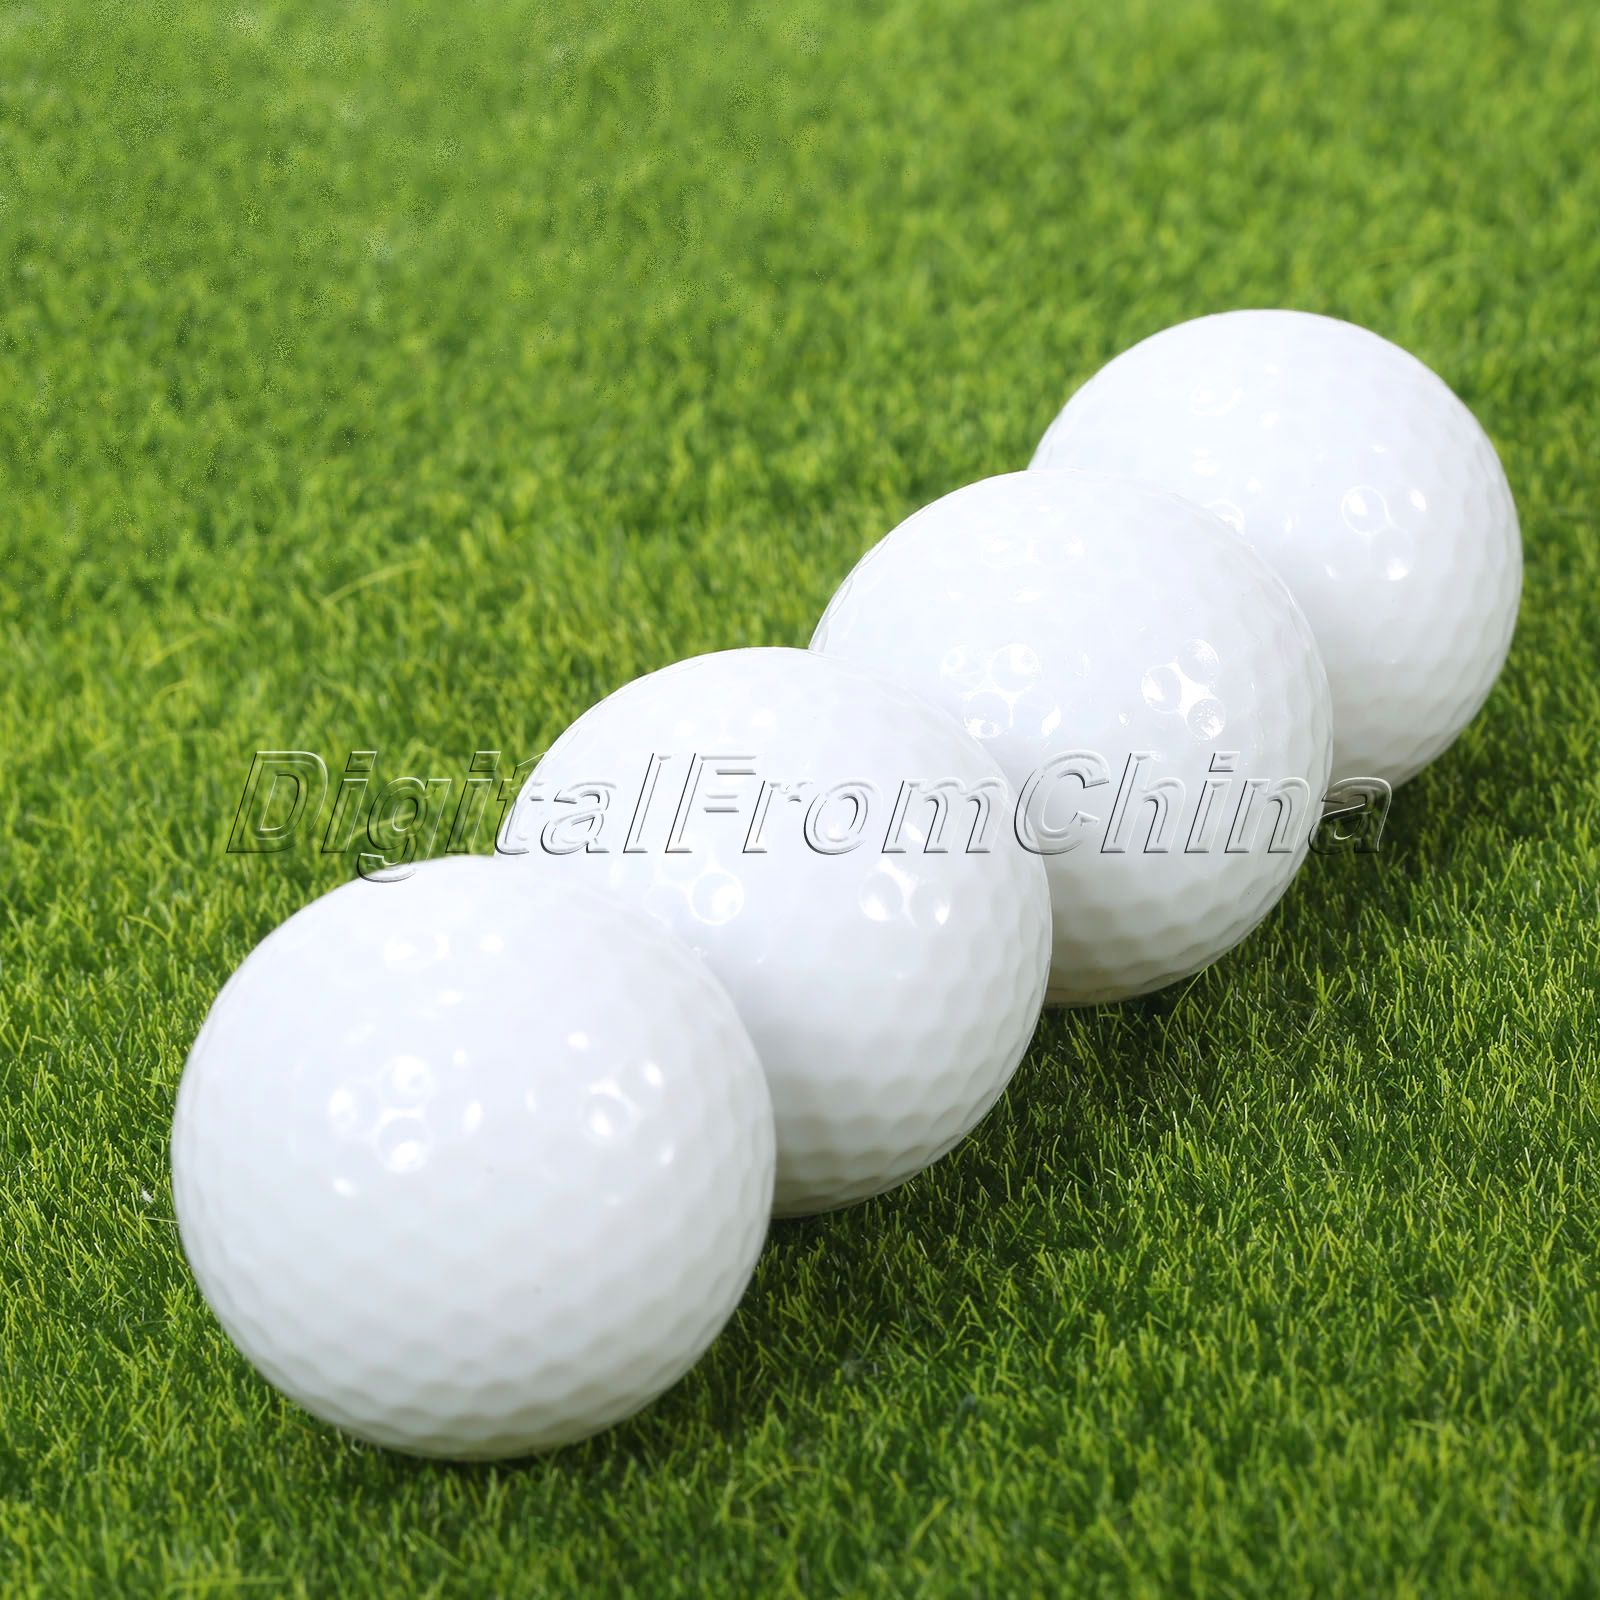 4Pcs Surlyn Golf Balls LED Electronic Golfing Light-up Flashing Night Light Glowing Night Tracker Flashing Golf Ball Accessories(China)